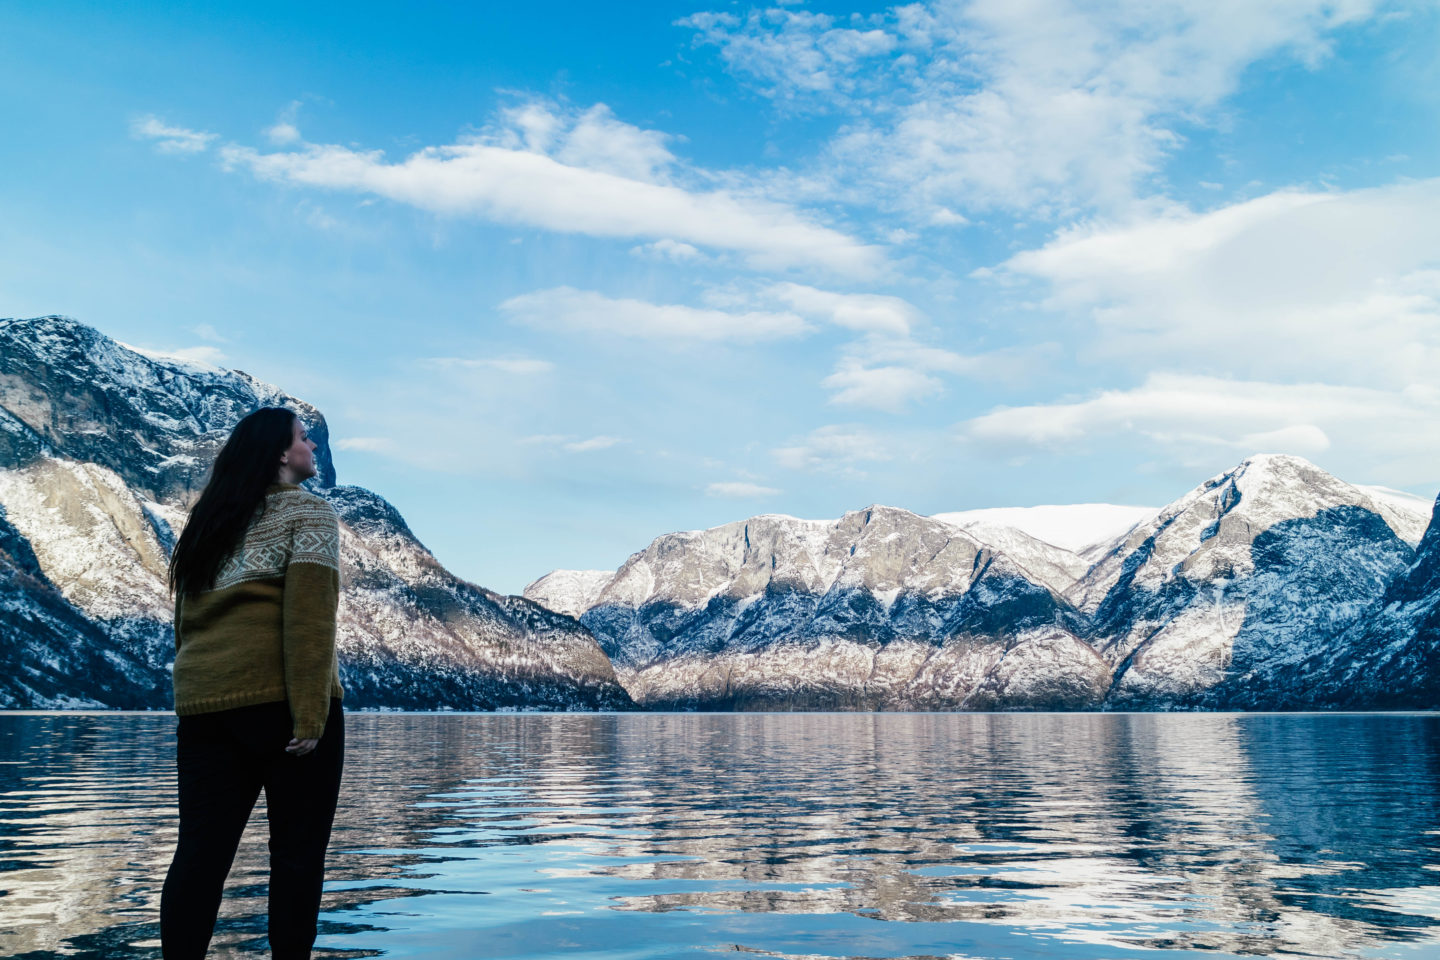 Travelling from flam to bergen - the aurlandsfjord